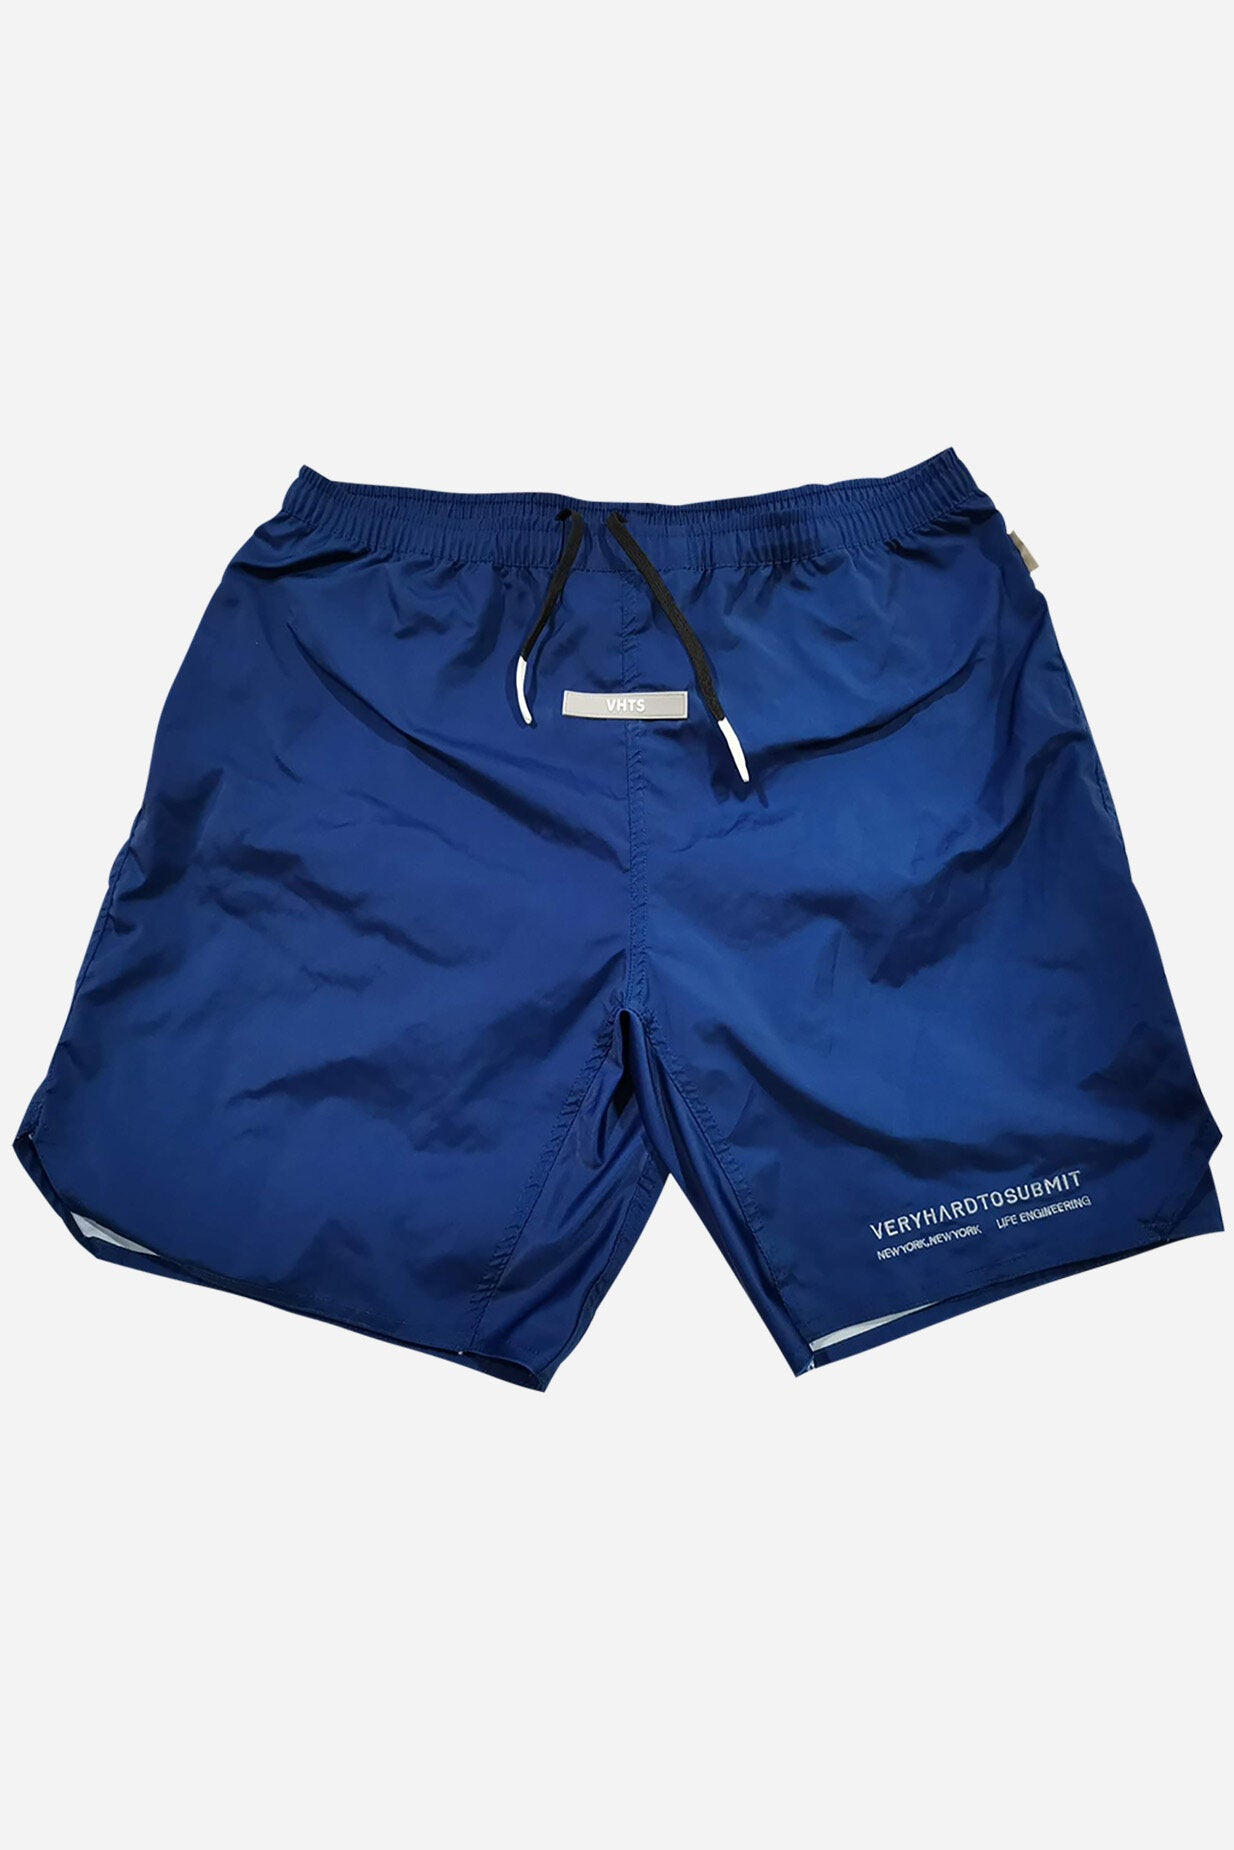 COMBAT SHORTS 2020 NAVY  True to size  Polyester 100%  Rubber label  Sublimation printed logo  plastic dip draw string tip  lycra gusset fabric    vhts europe